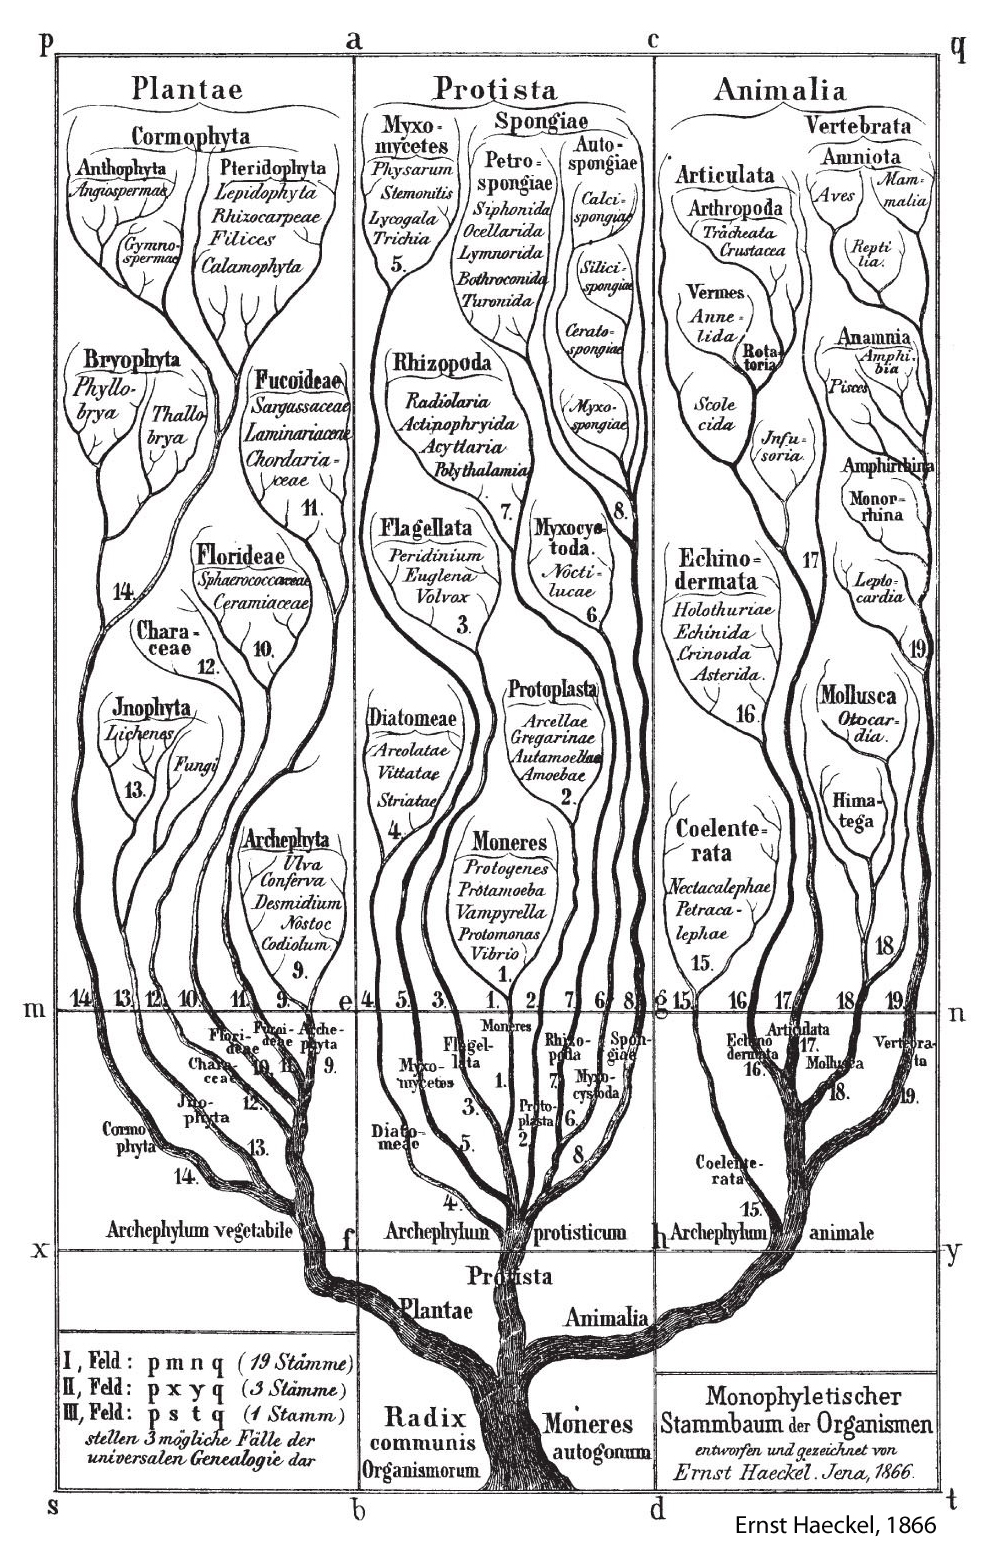 Homologies Phylogenies Sequence Space and the Theory of Evolution – Patterns of Evolution Worksheet